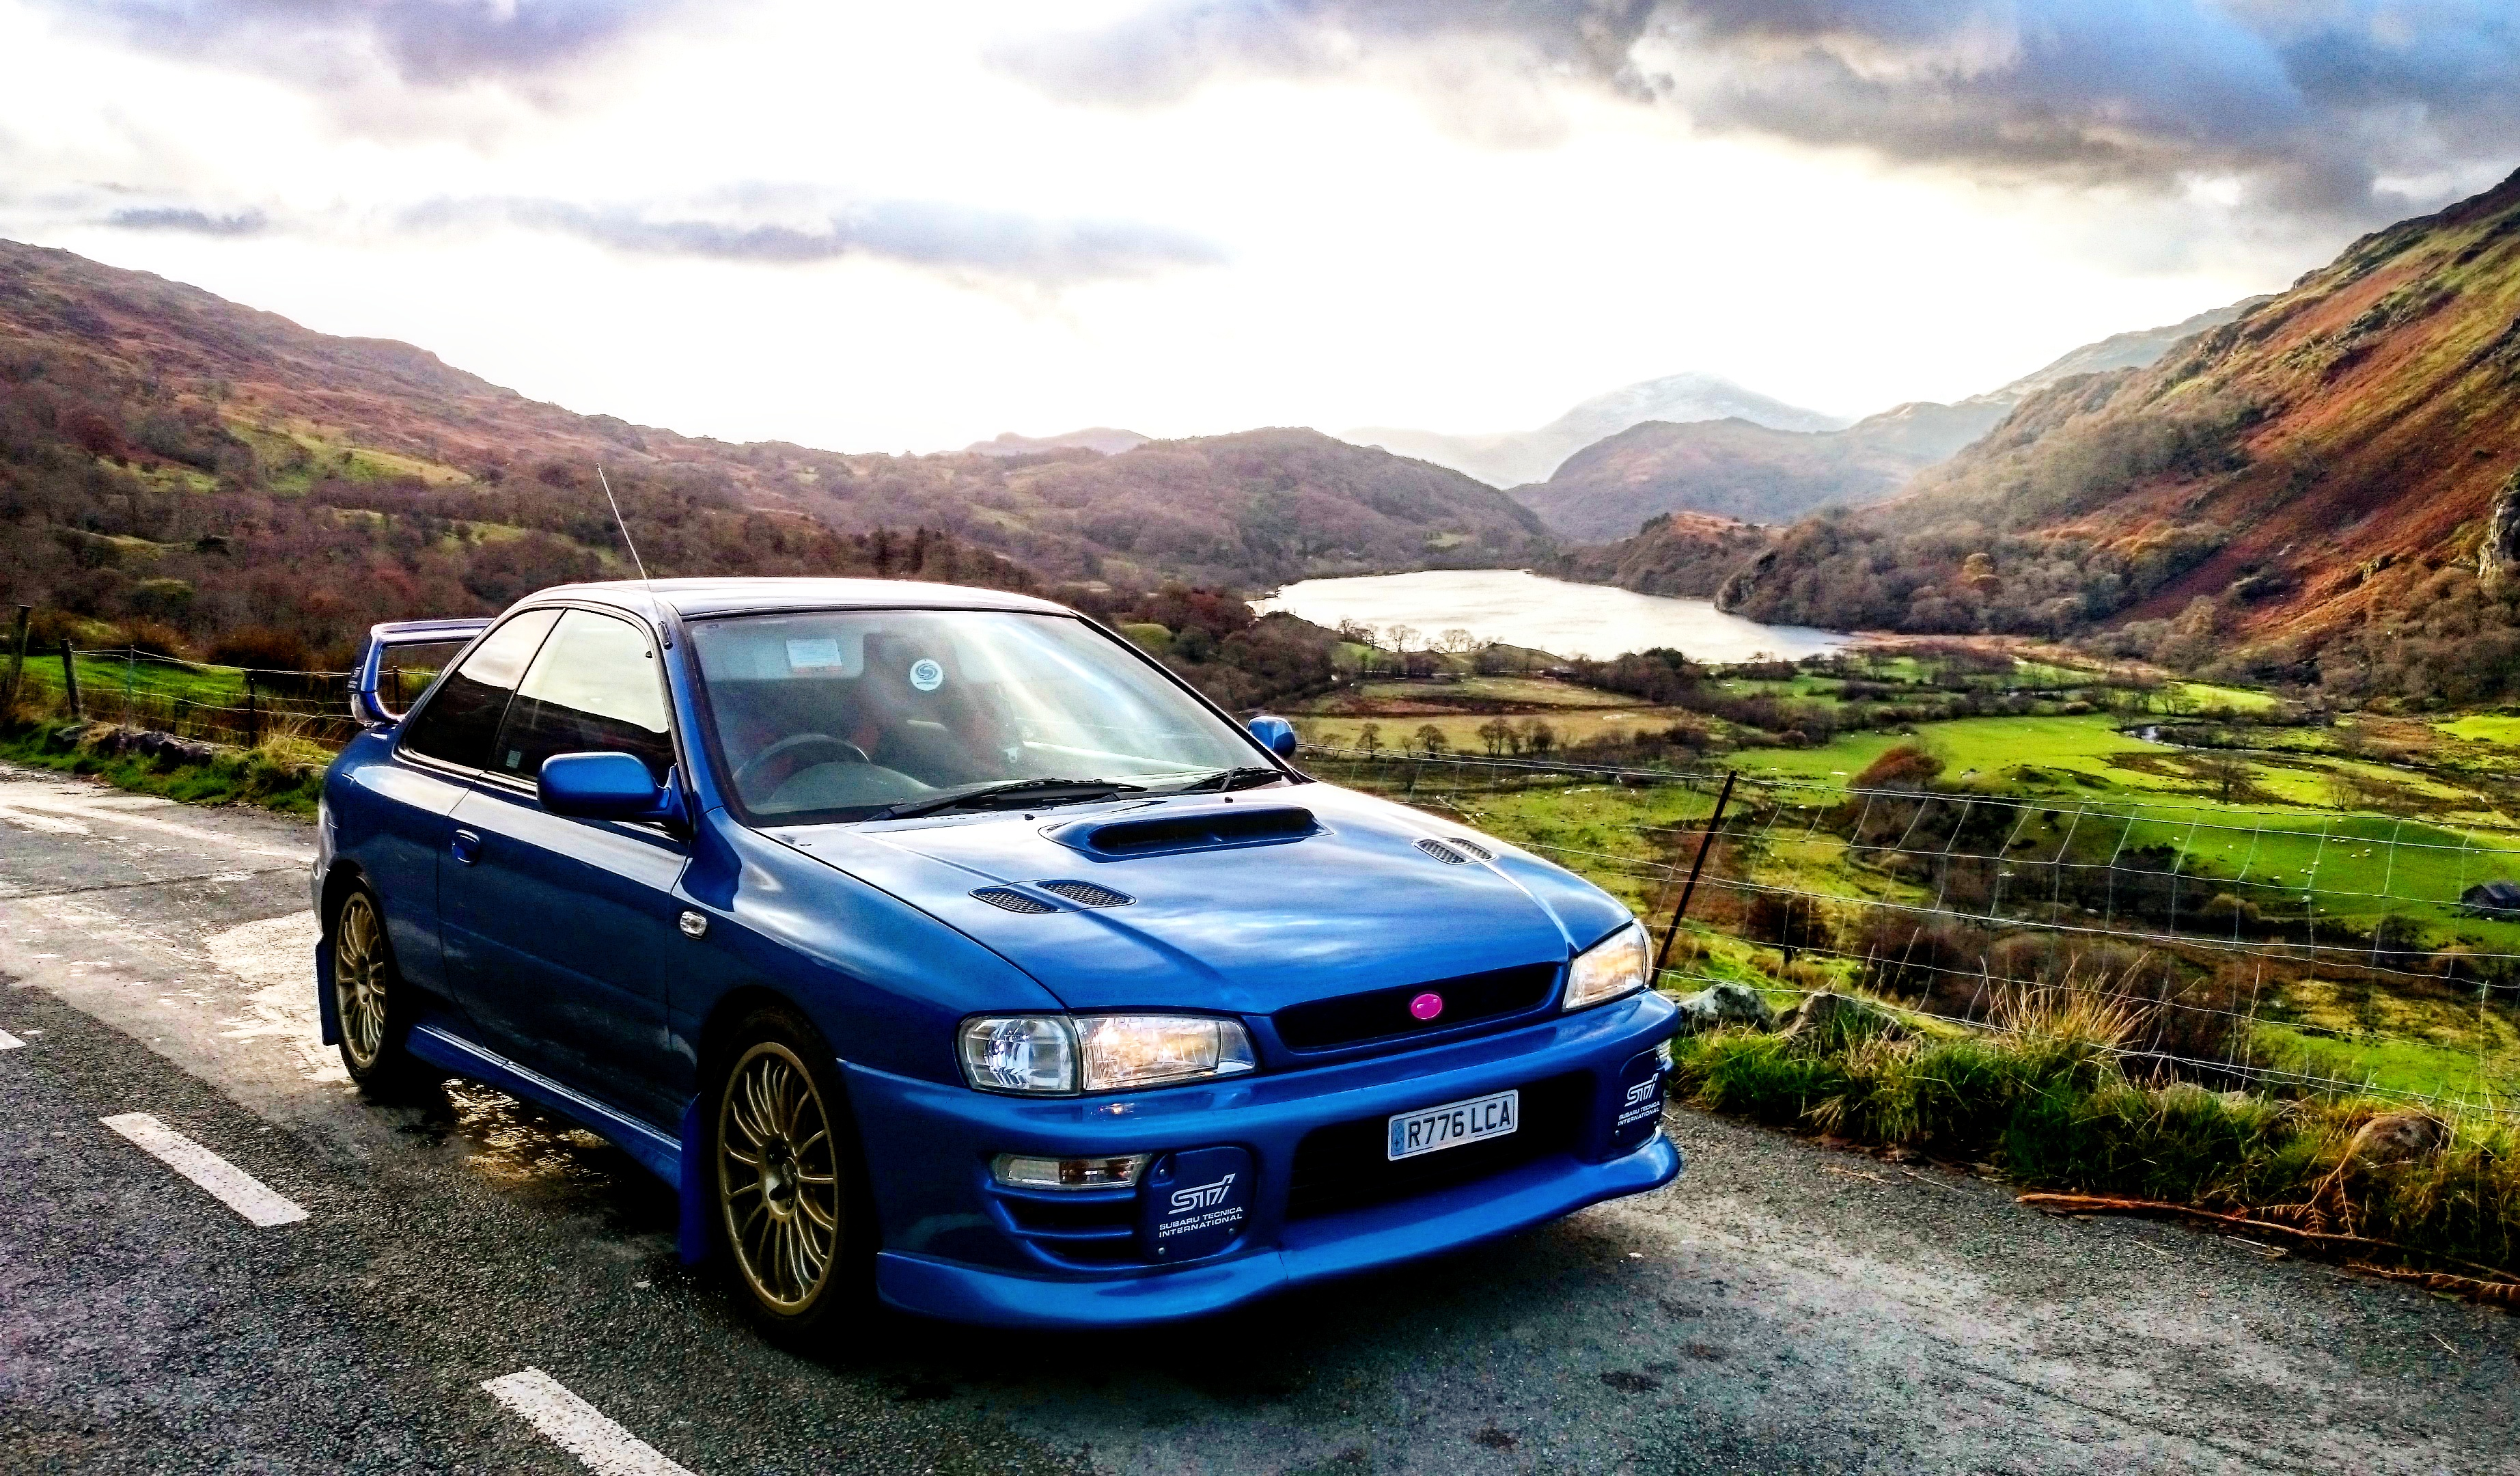 1998 Subaru Impreza Type R Version 4 V Limited